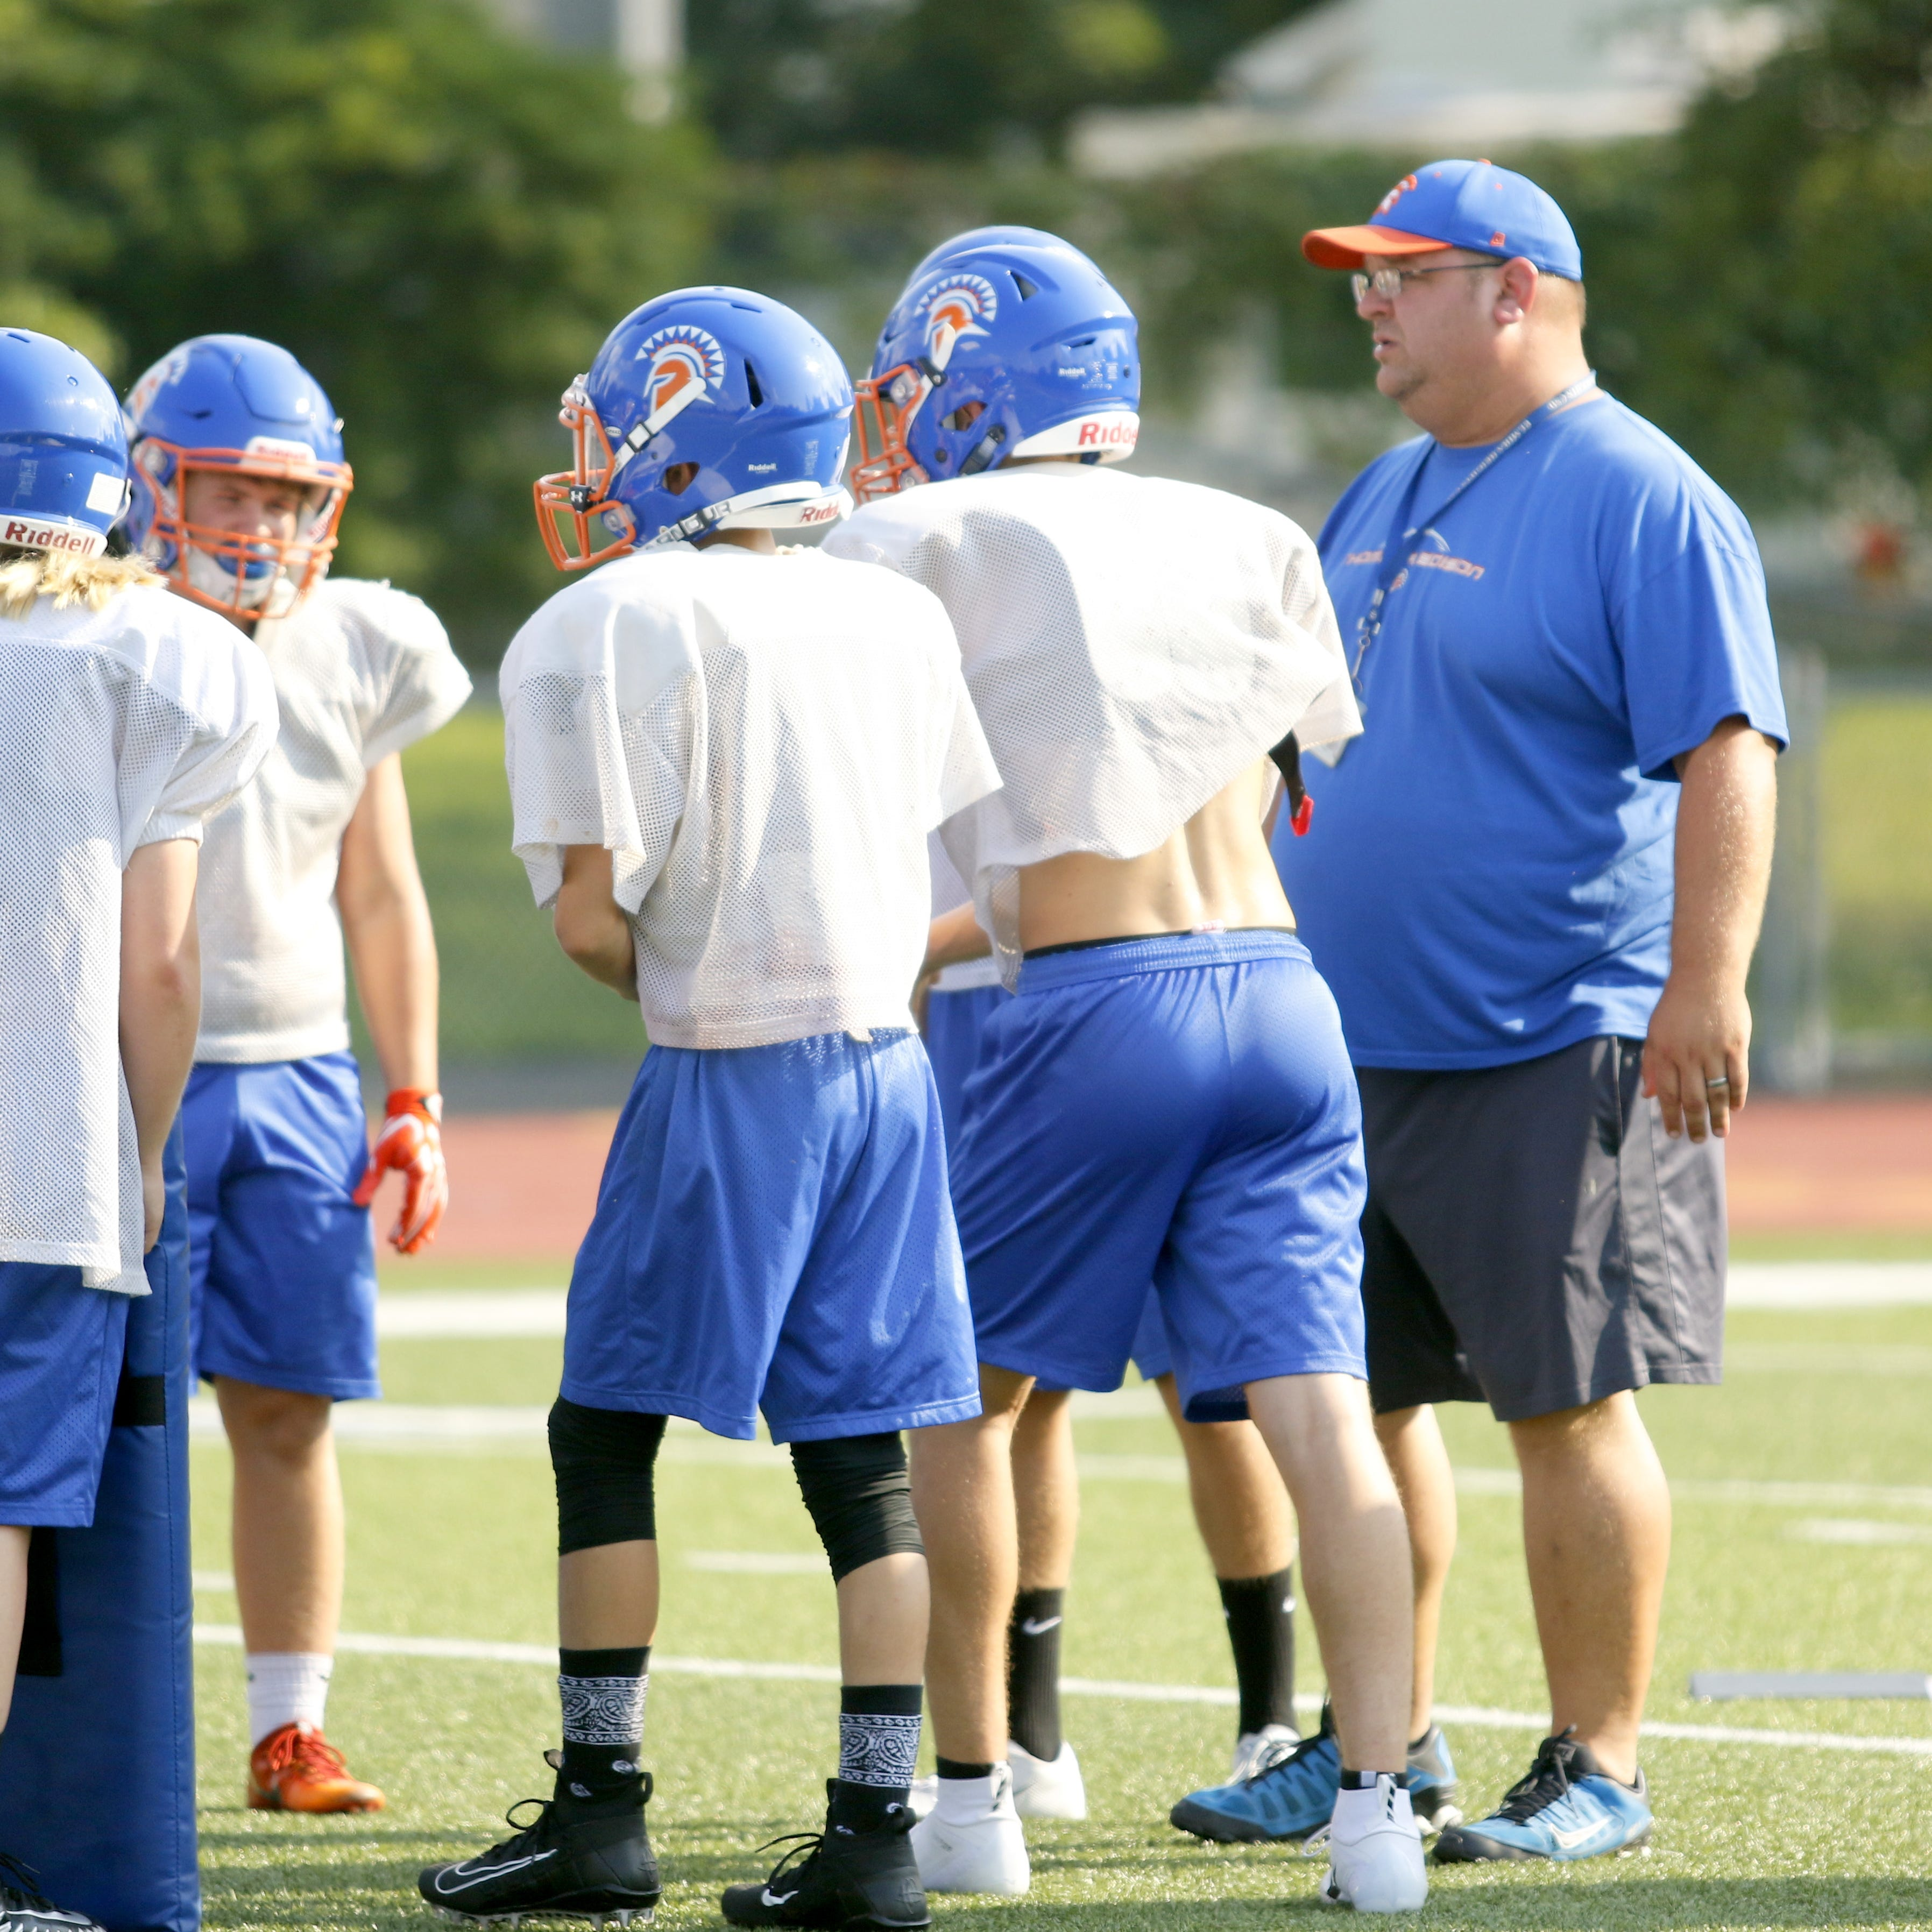 Kyle Erickson brings experience to role as Edison football head coach